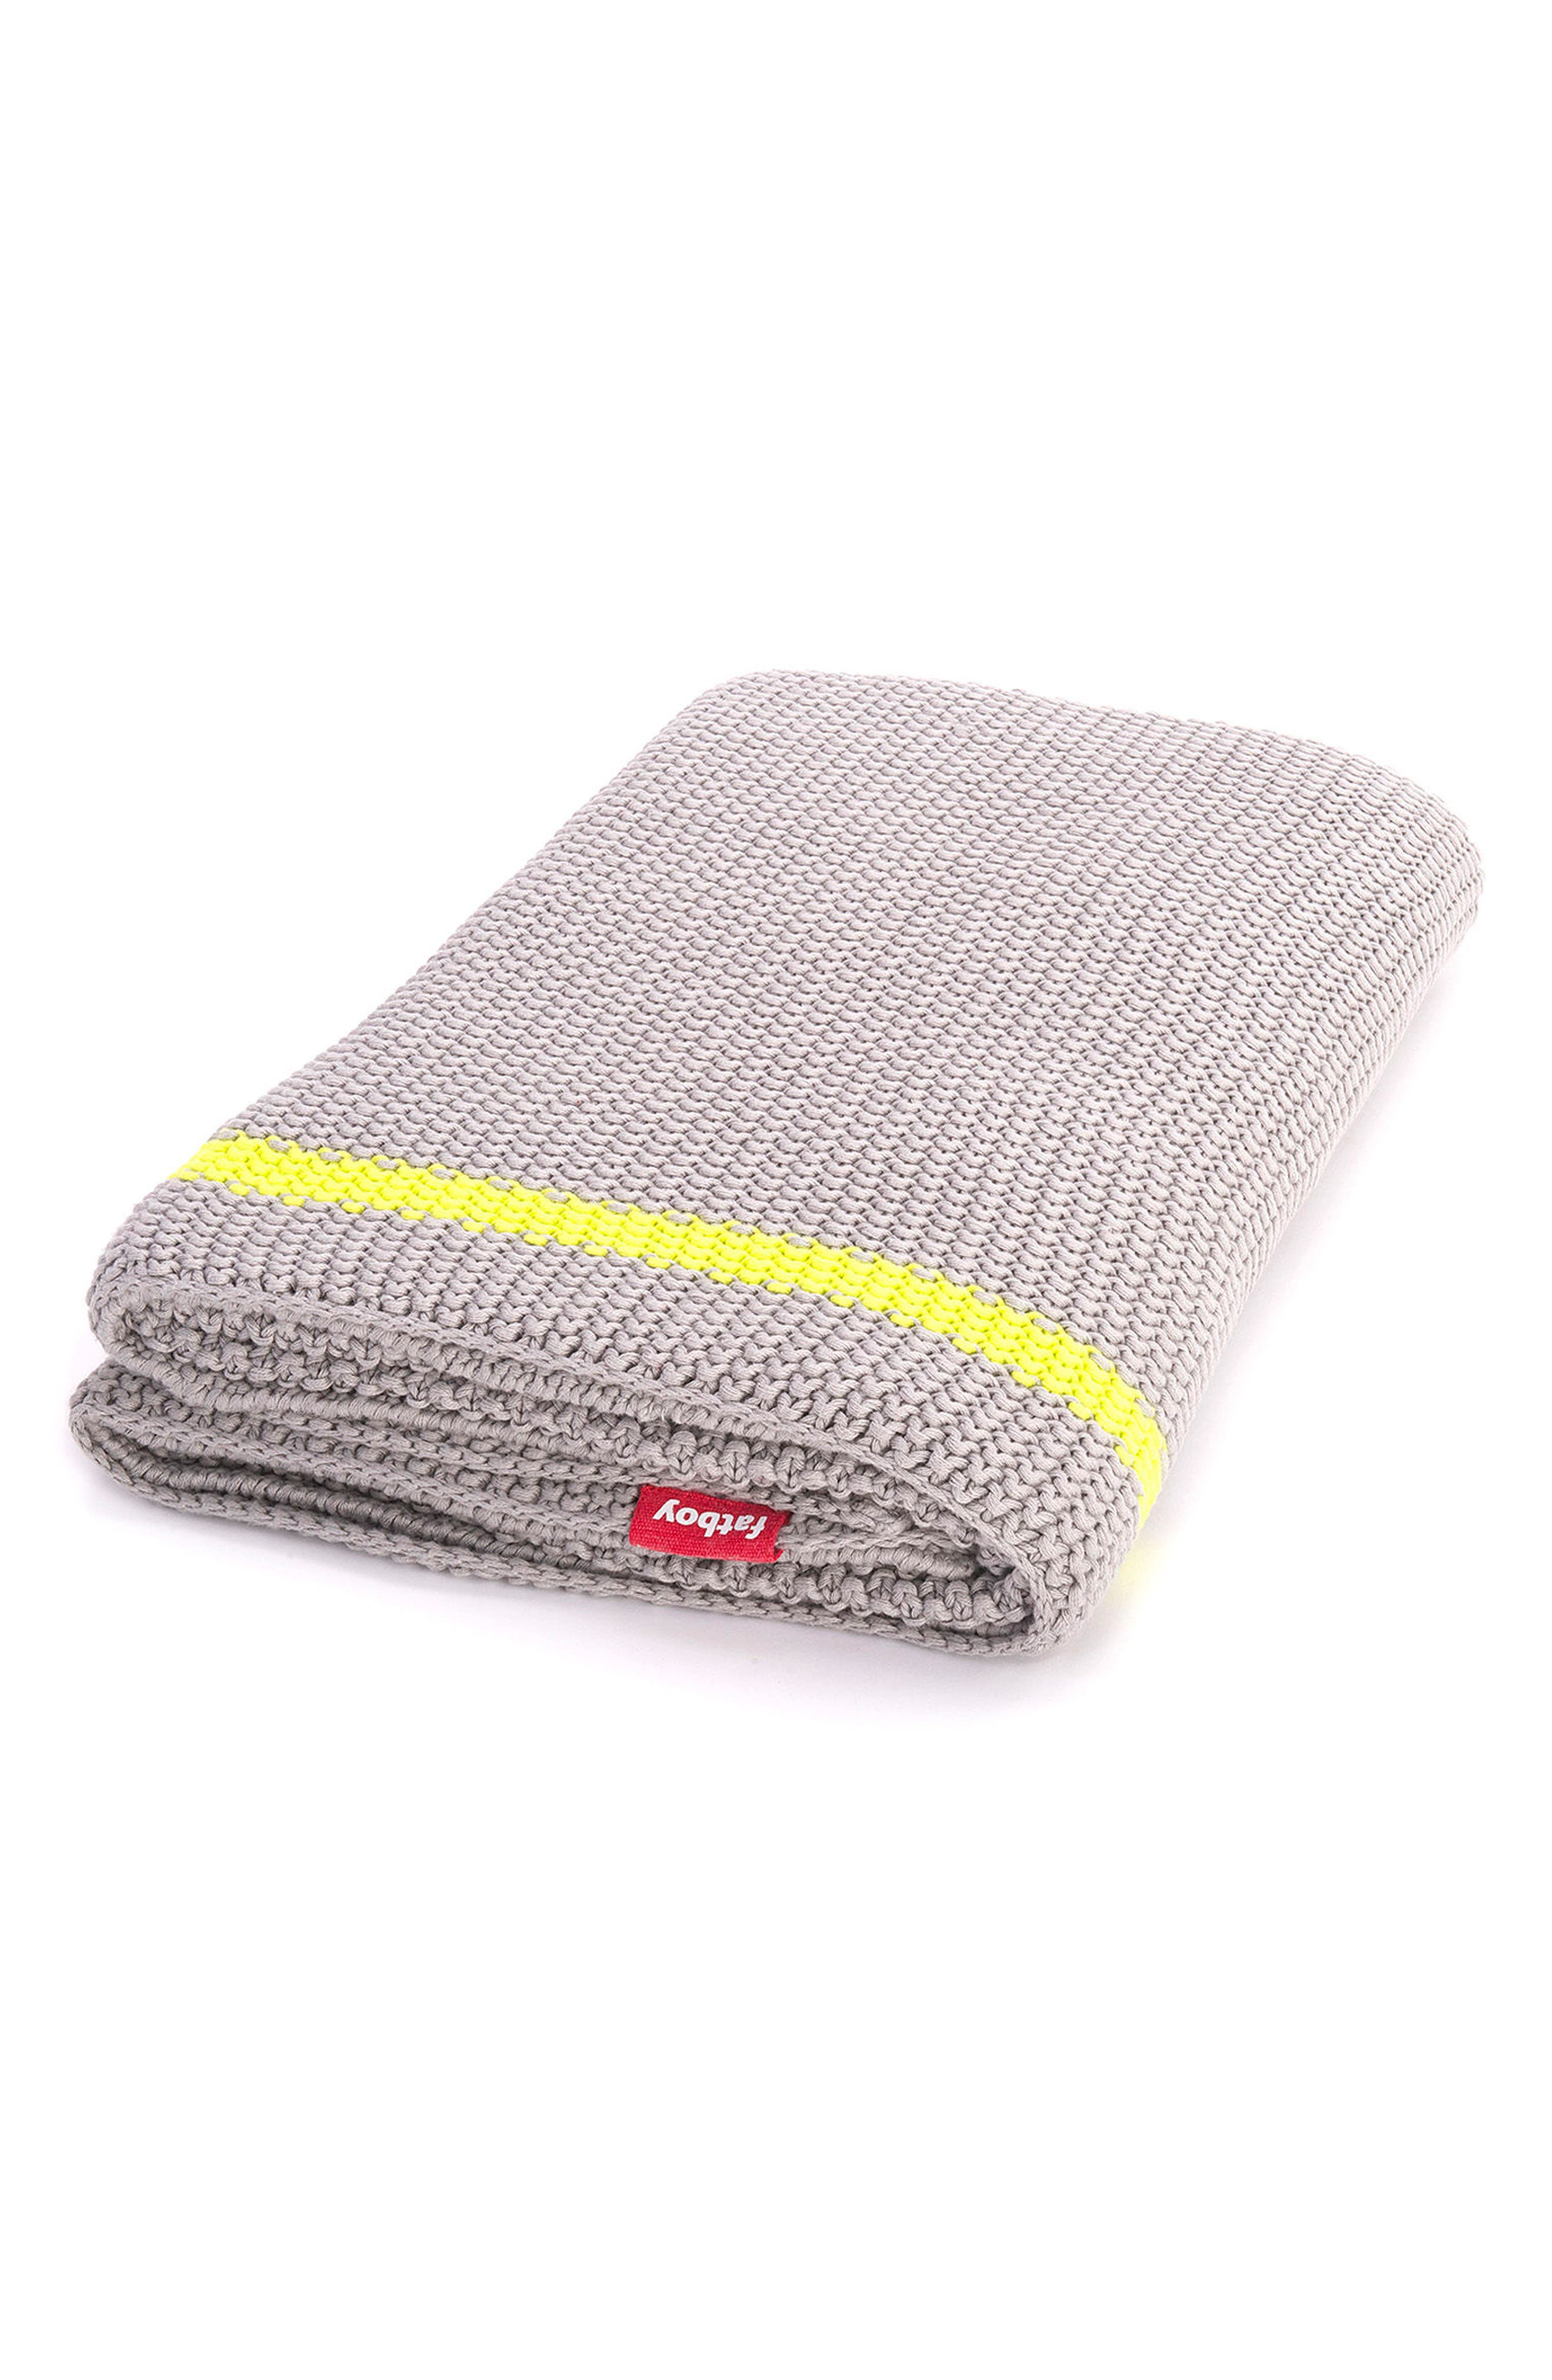 Klaid Throw,                         Main,                         color, Light Grey/ Yellow Stripe